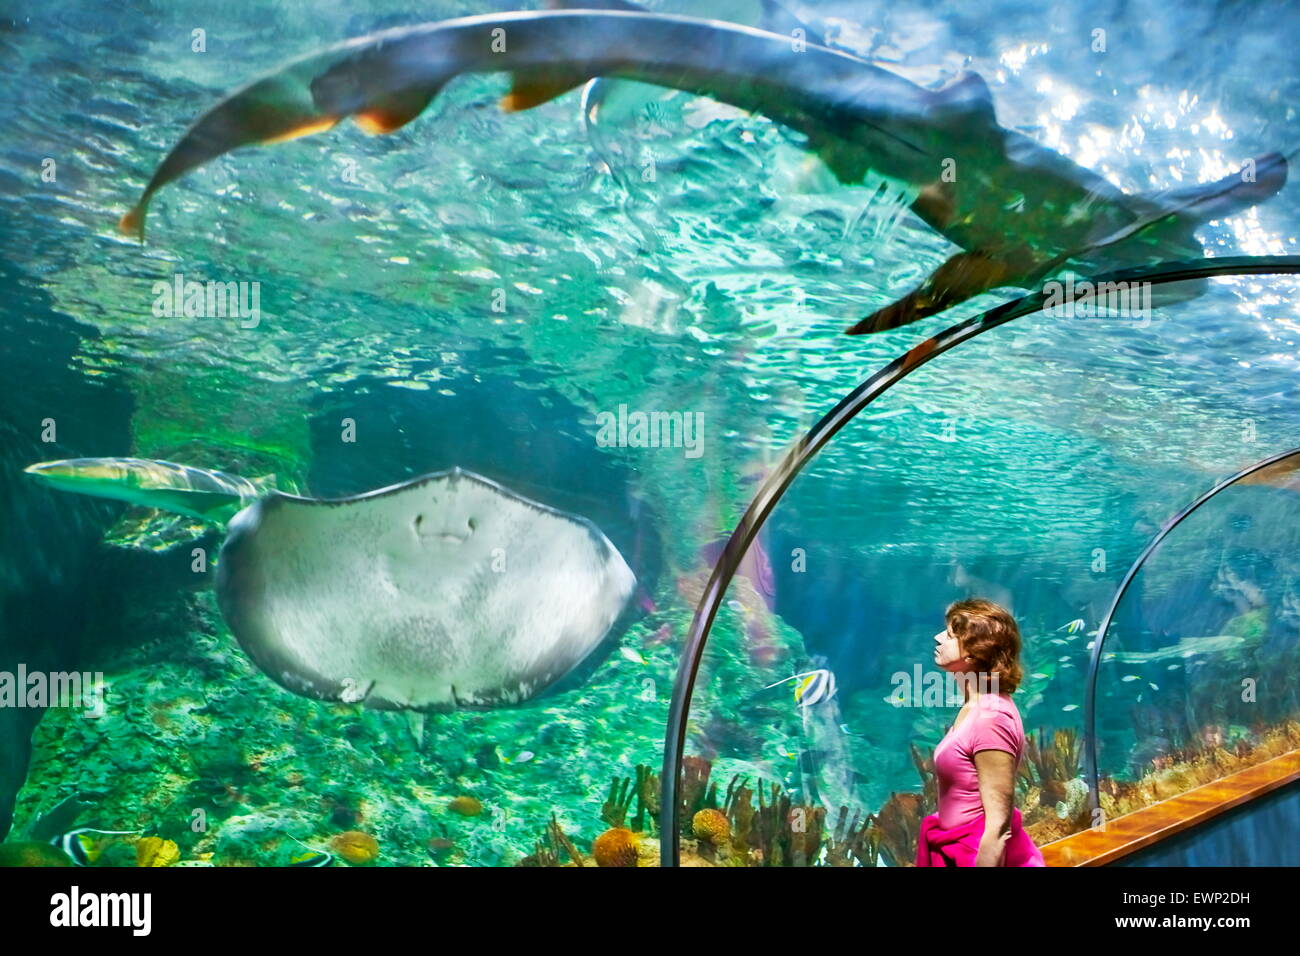 The Shark and Stingray, aquarium in Loro Parque, Puerto de la Cruz, Tenerife, Canary Islands, Spain - Stock Image